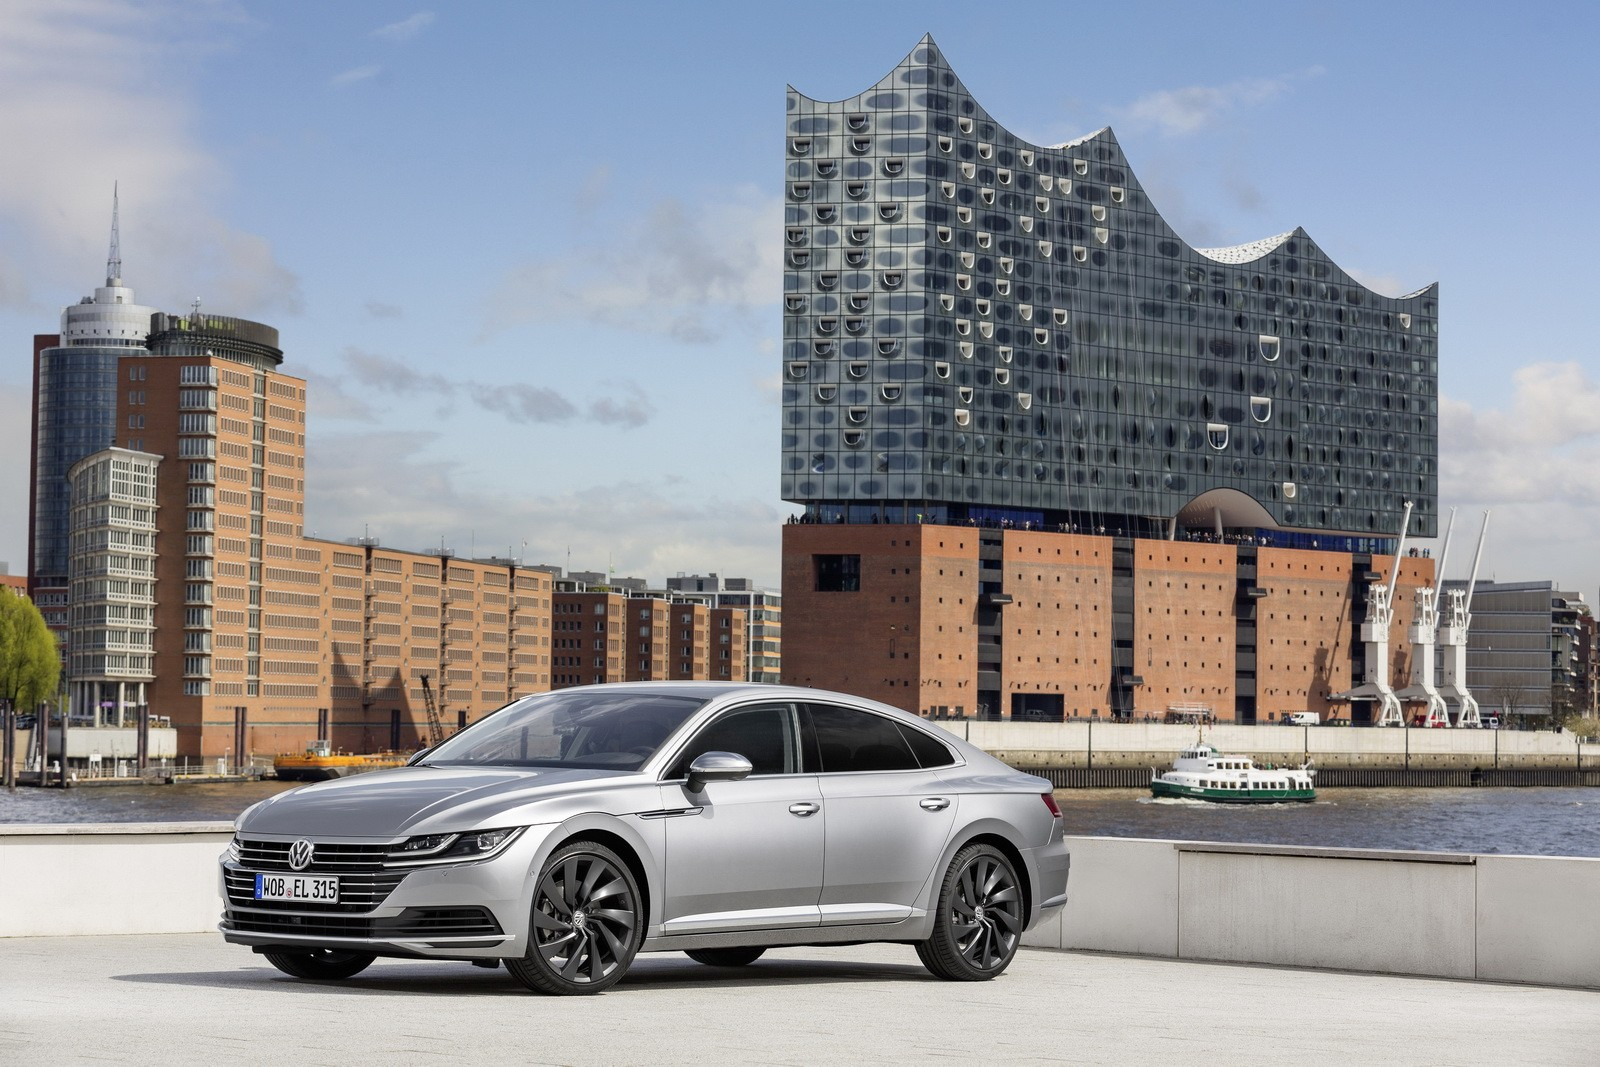 2019 volkswagen arteon to debut at chicago auto show autoevolution. Black Bedroom Furniture Sets. Home Design Ideas